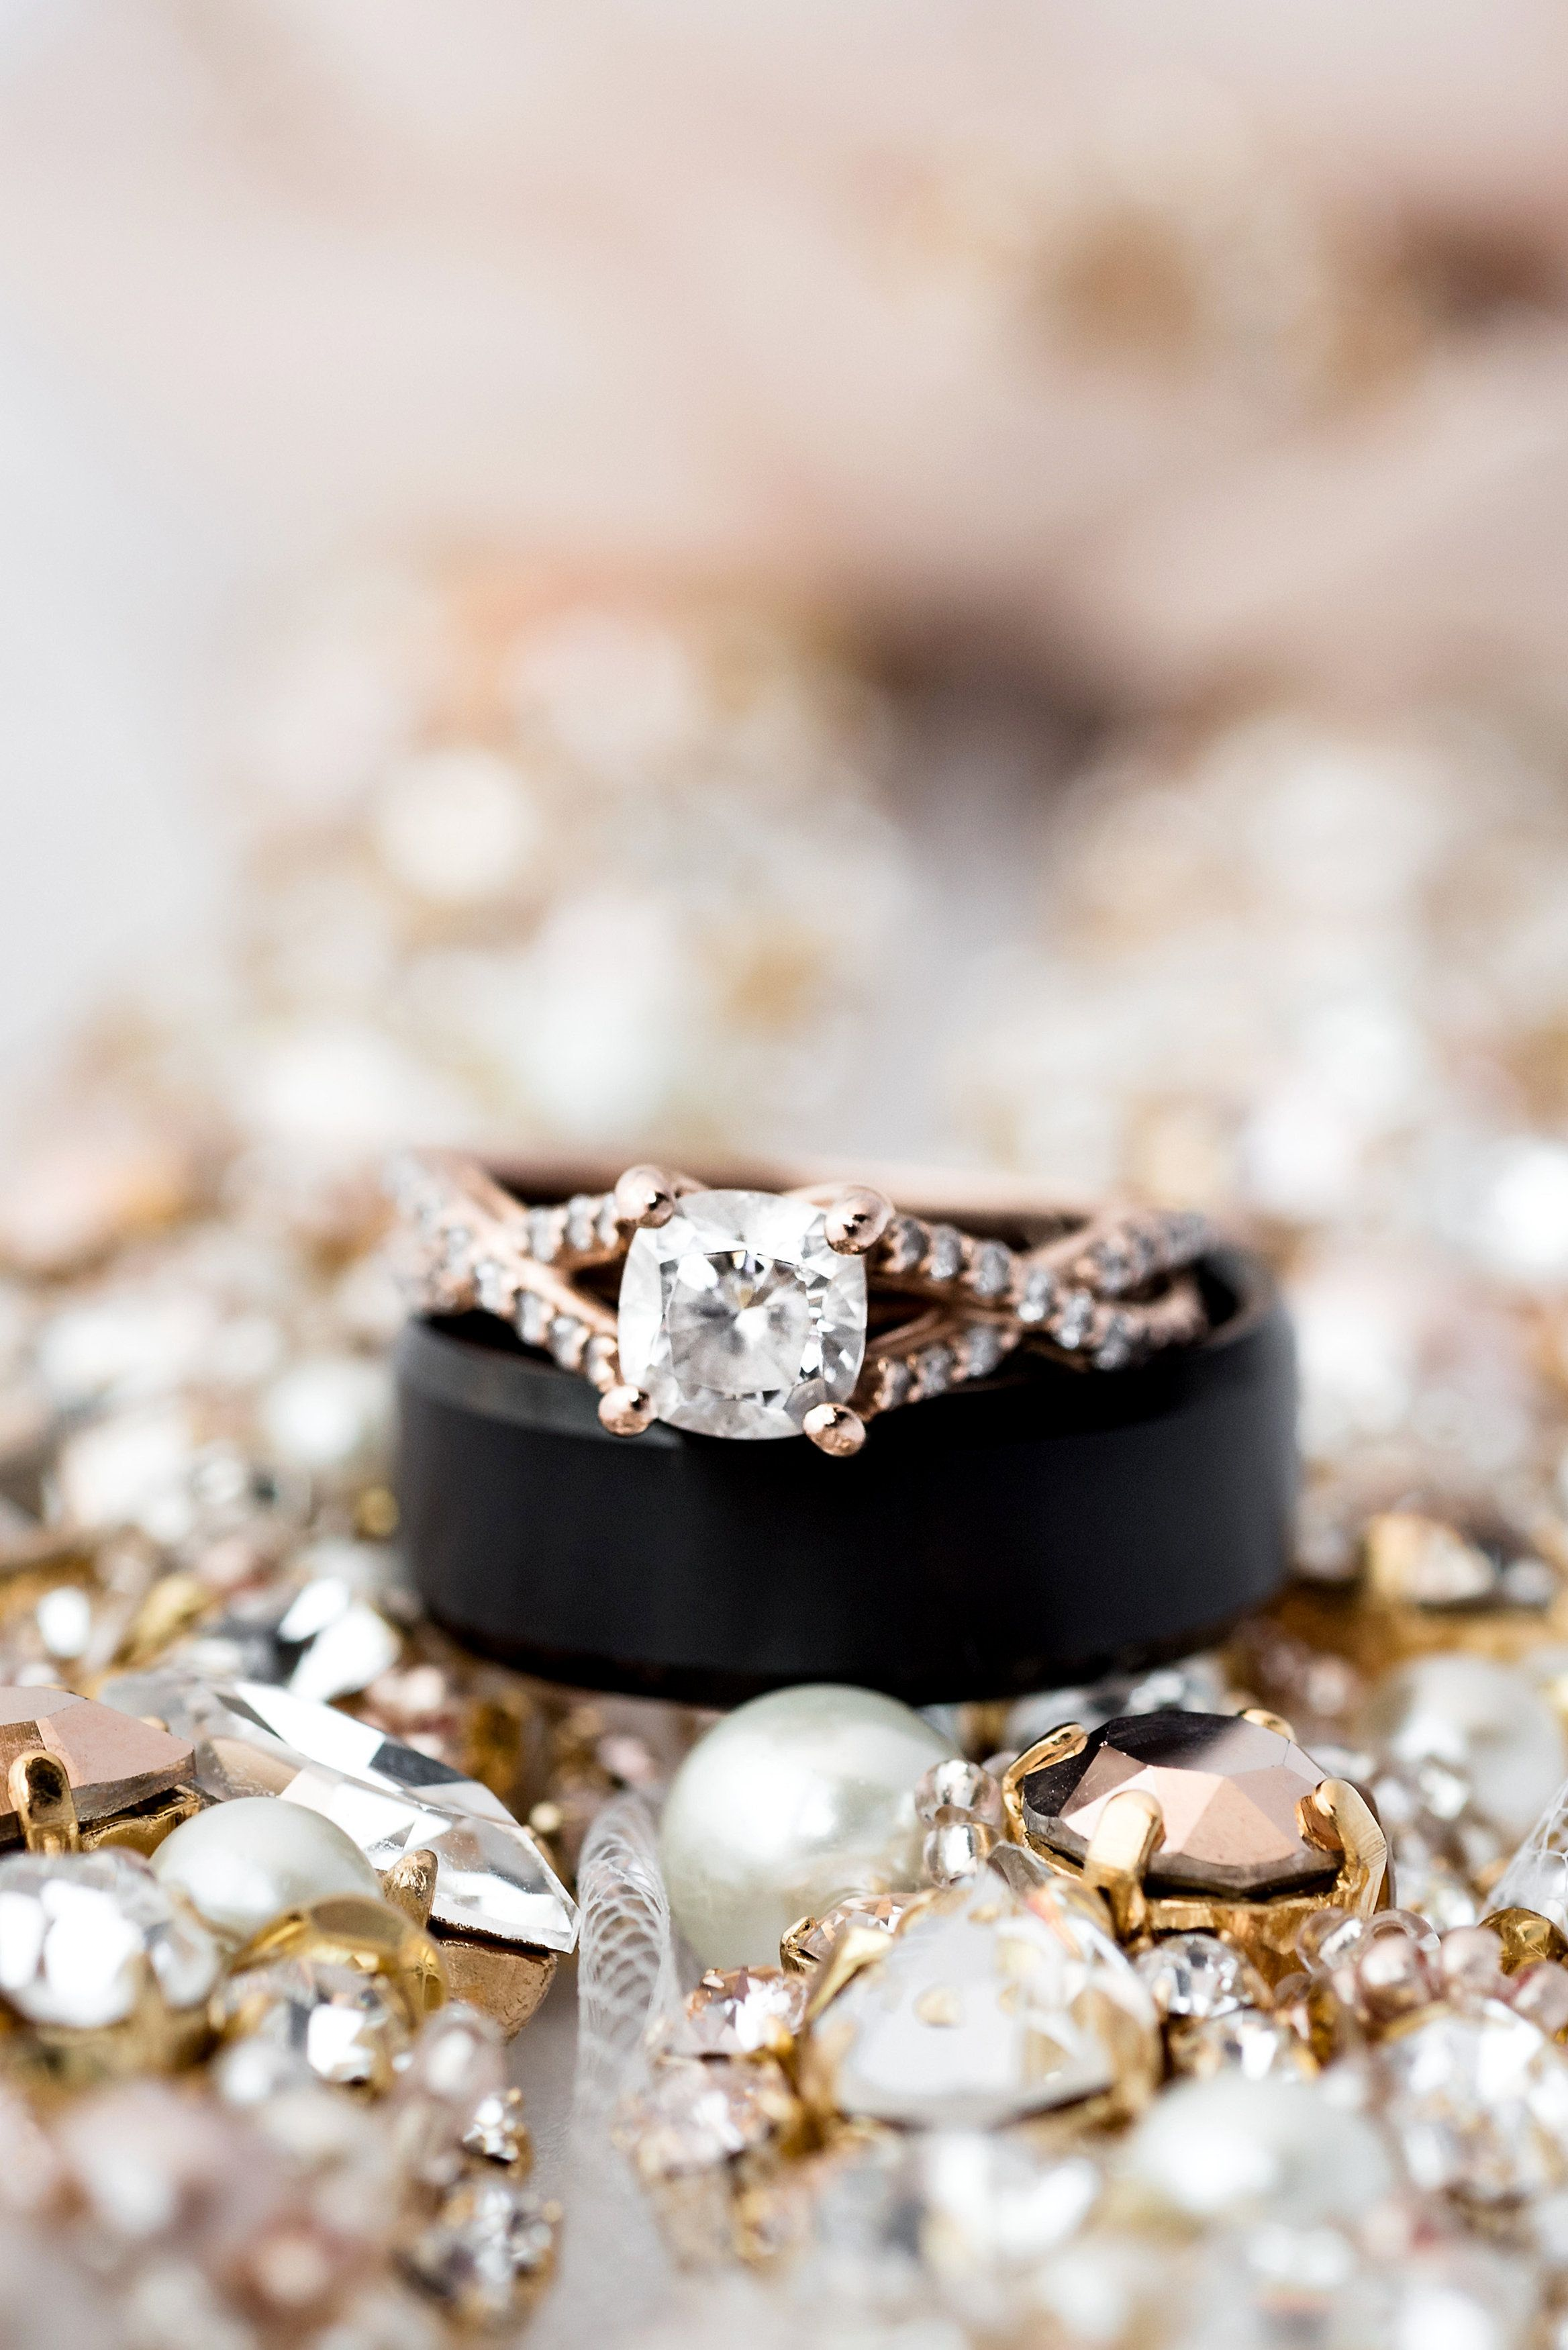 Diamond with rose gold weaving... View the full wedding here: http://thedailywedding.com/2016/05/05/classic-church-wedding-kacey-ethan/